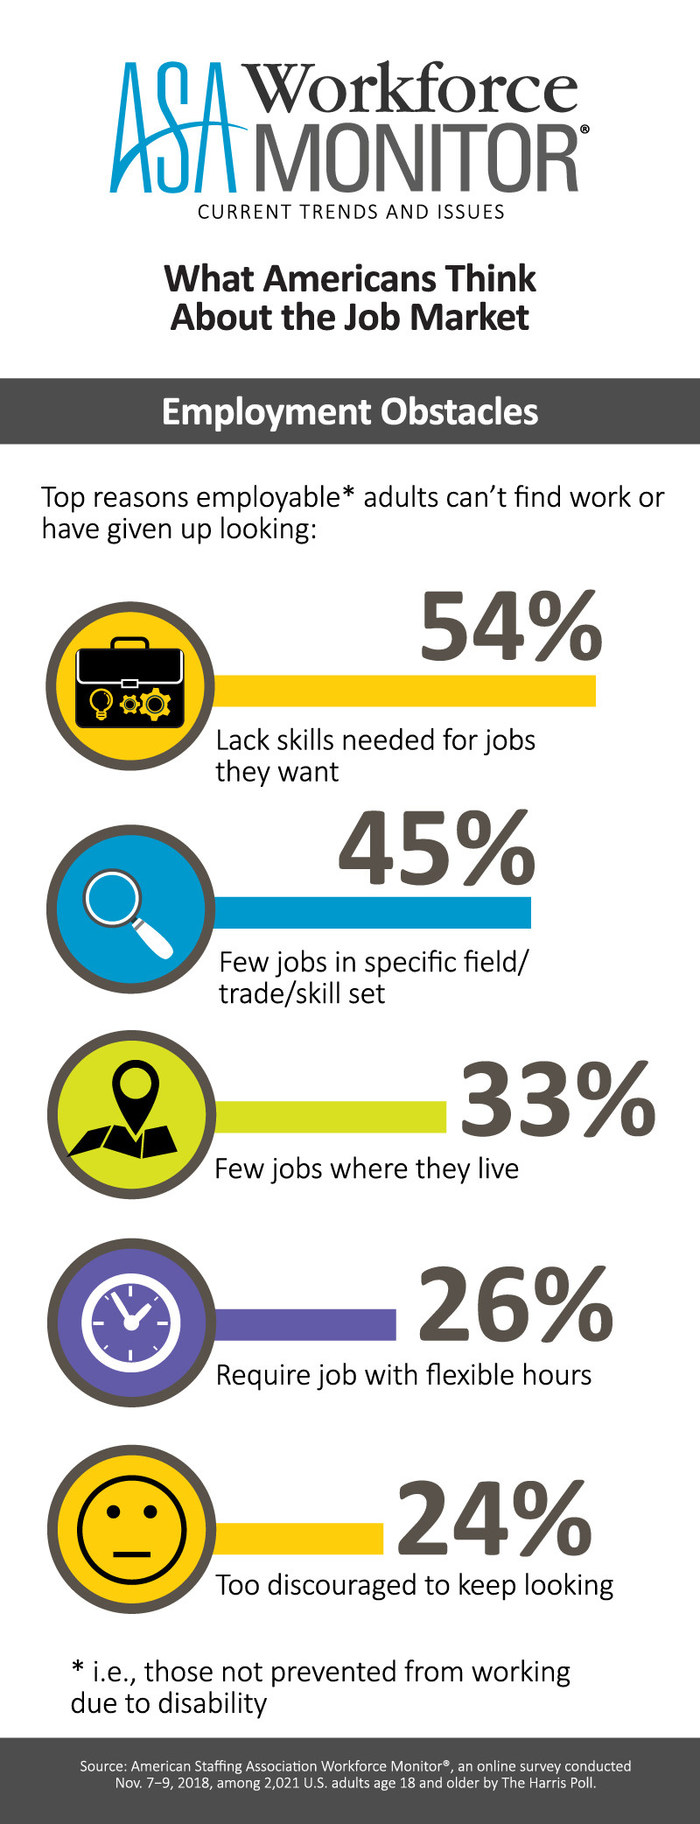 Americans say the top reason employable adults can't find work or have given up looking is they lack the skills for the jobs they want, according to the latest ASA Workforce Monitor.